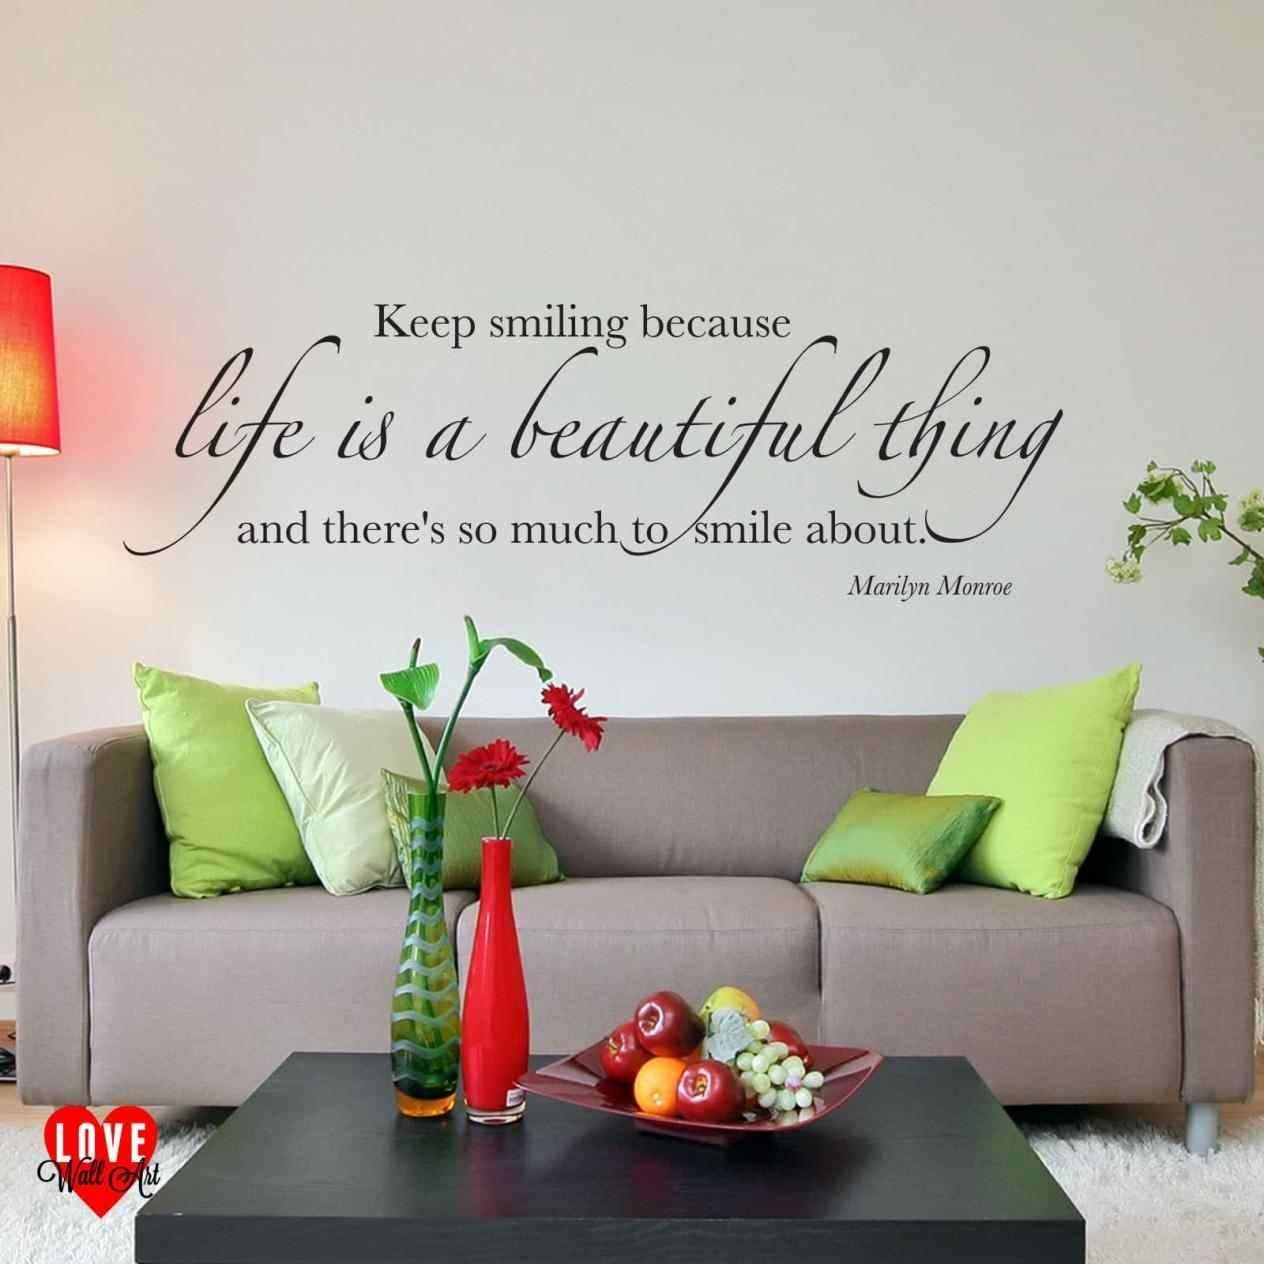 For Sleep Monroe Marilyn Monroe Wall Art Quotes Quote Who Said Throughout 2018 Marilyn Monroe Wall Art Quotes (View 5 of 25)